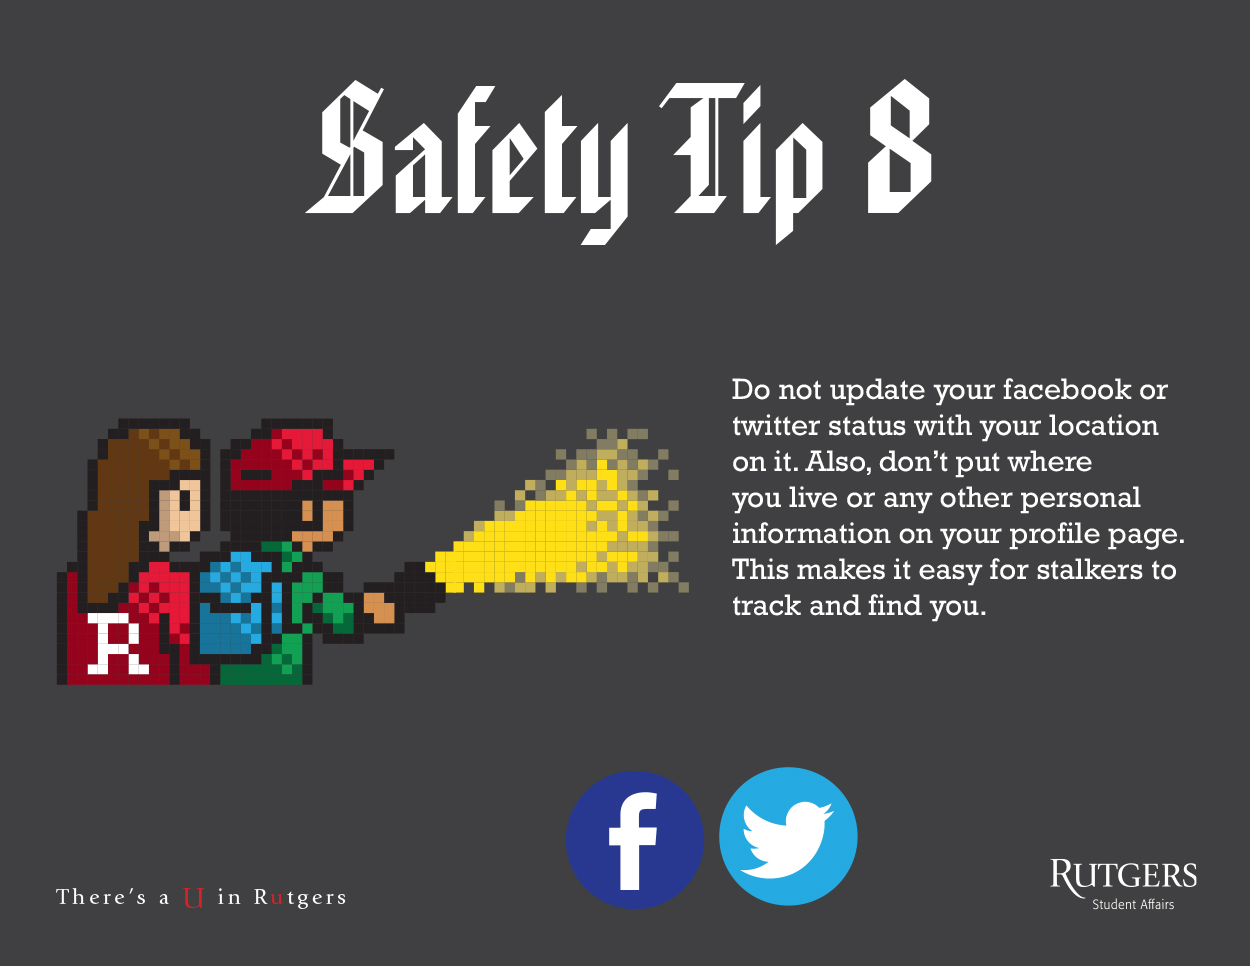 Don't publicly post information on social media that makes you easy to find or track.